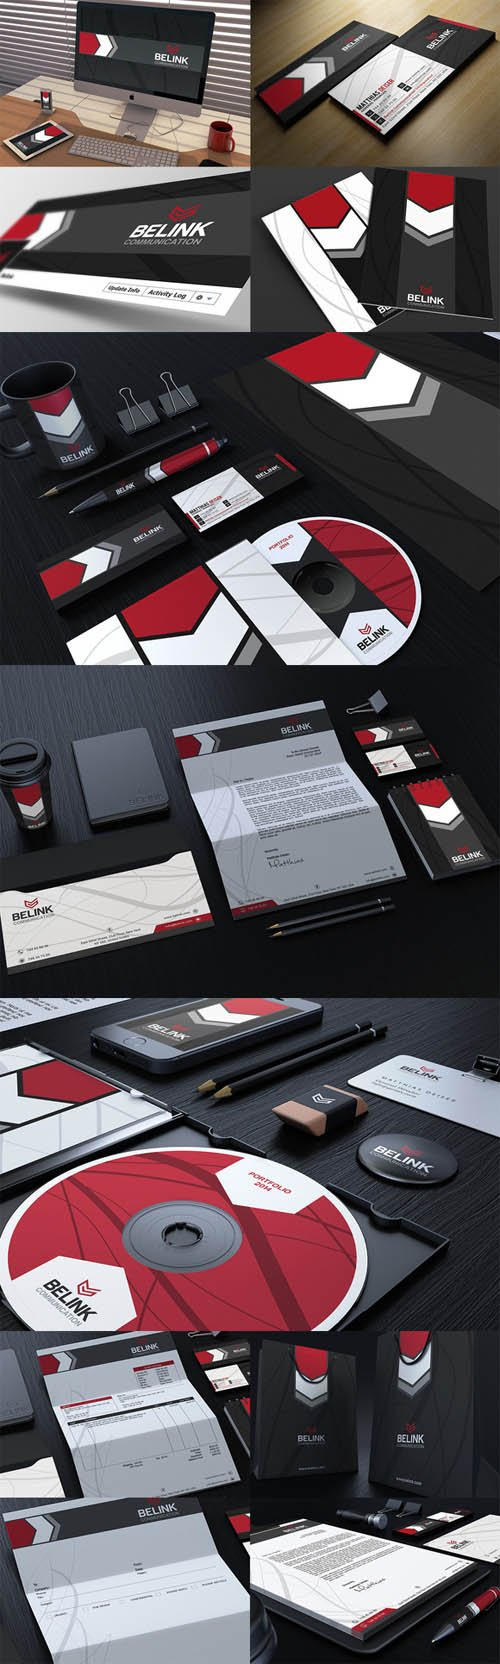 Red And Black Corporate Identity